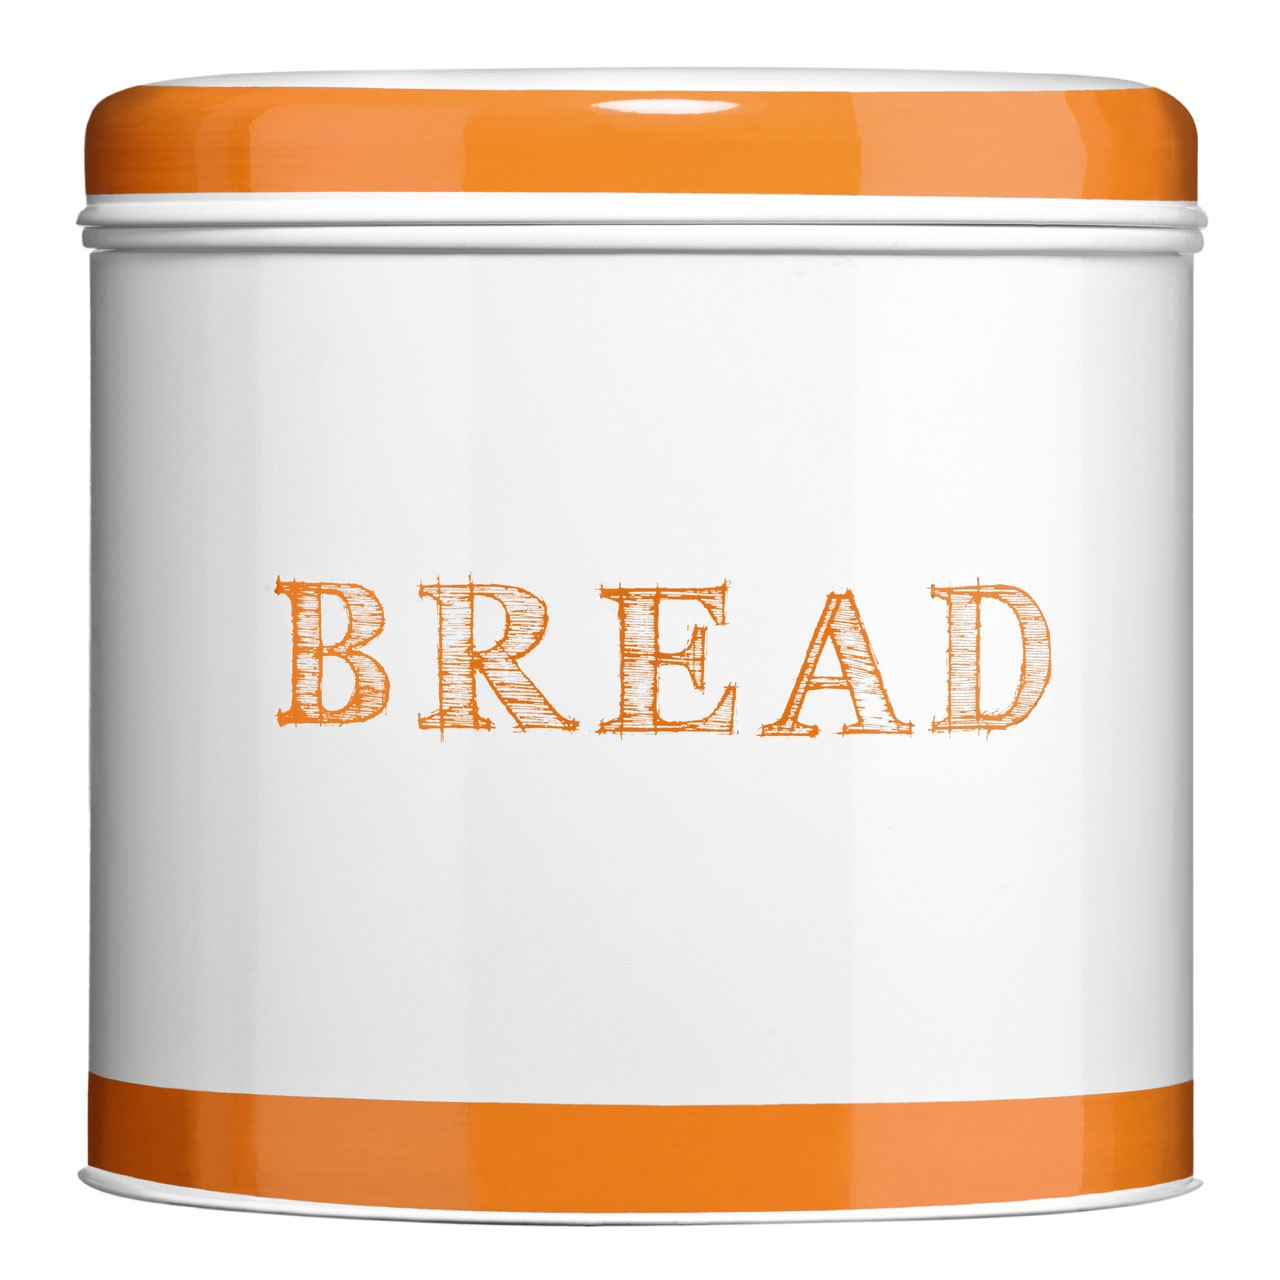 Band Bread Bin - Orange